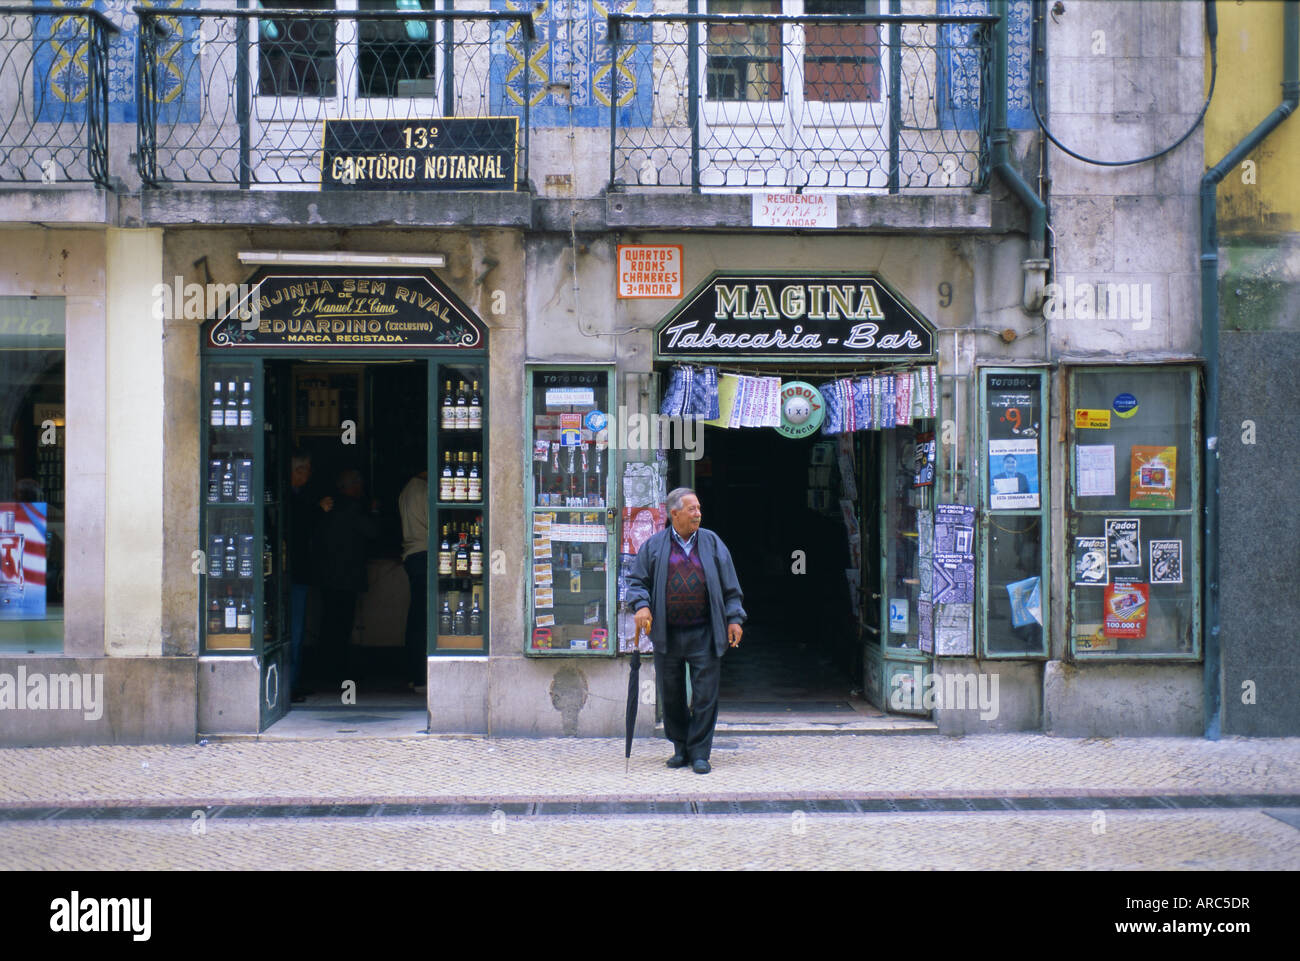 Typical shop fronts in the city centre, Lisbon, Portugal, Europe - Stock Image